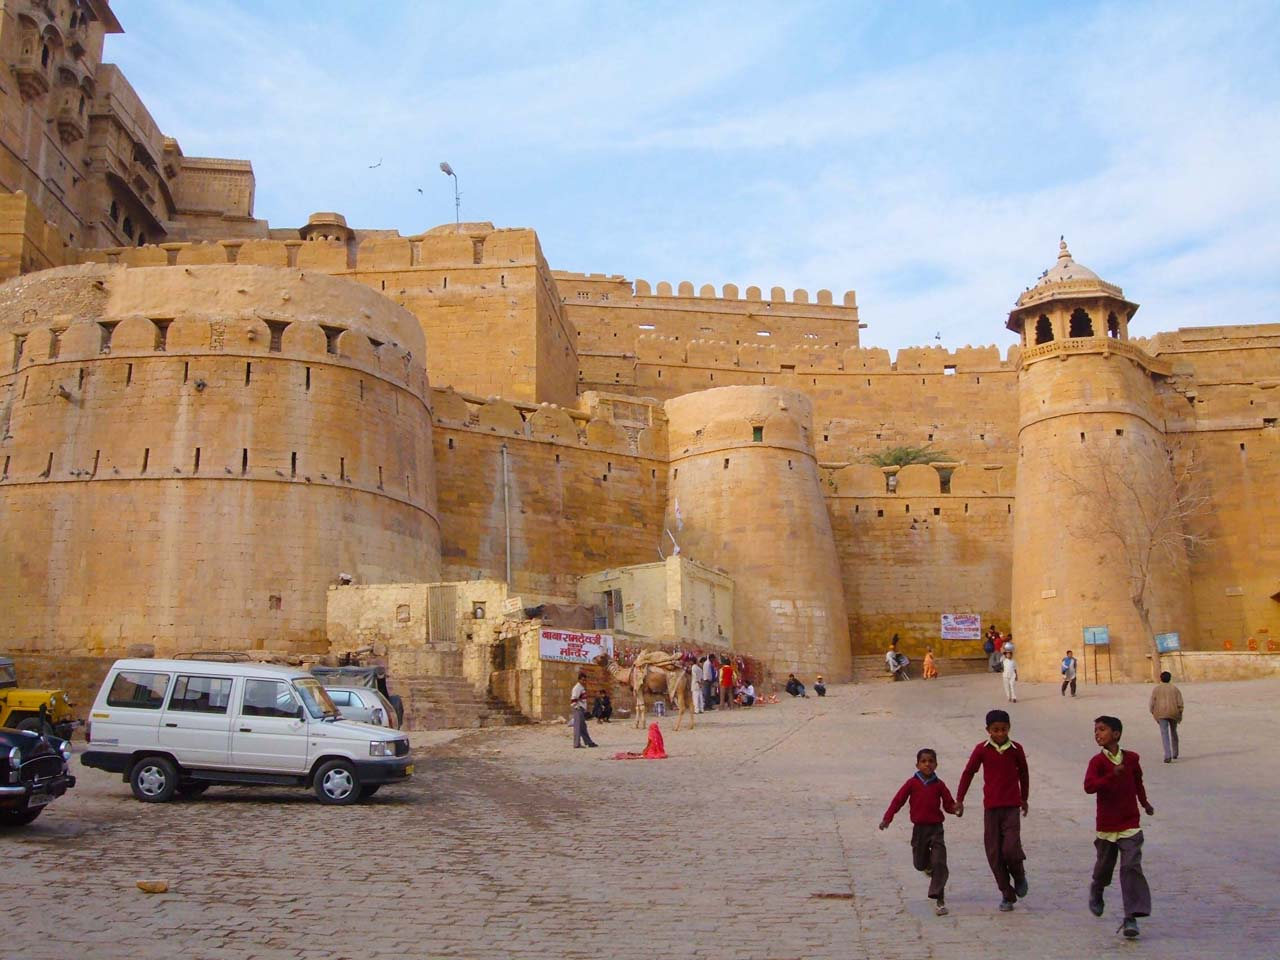 Jaisalmer Fort entry gate